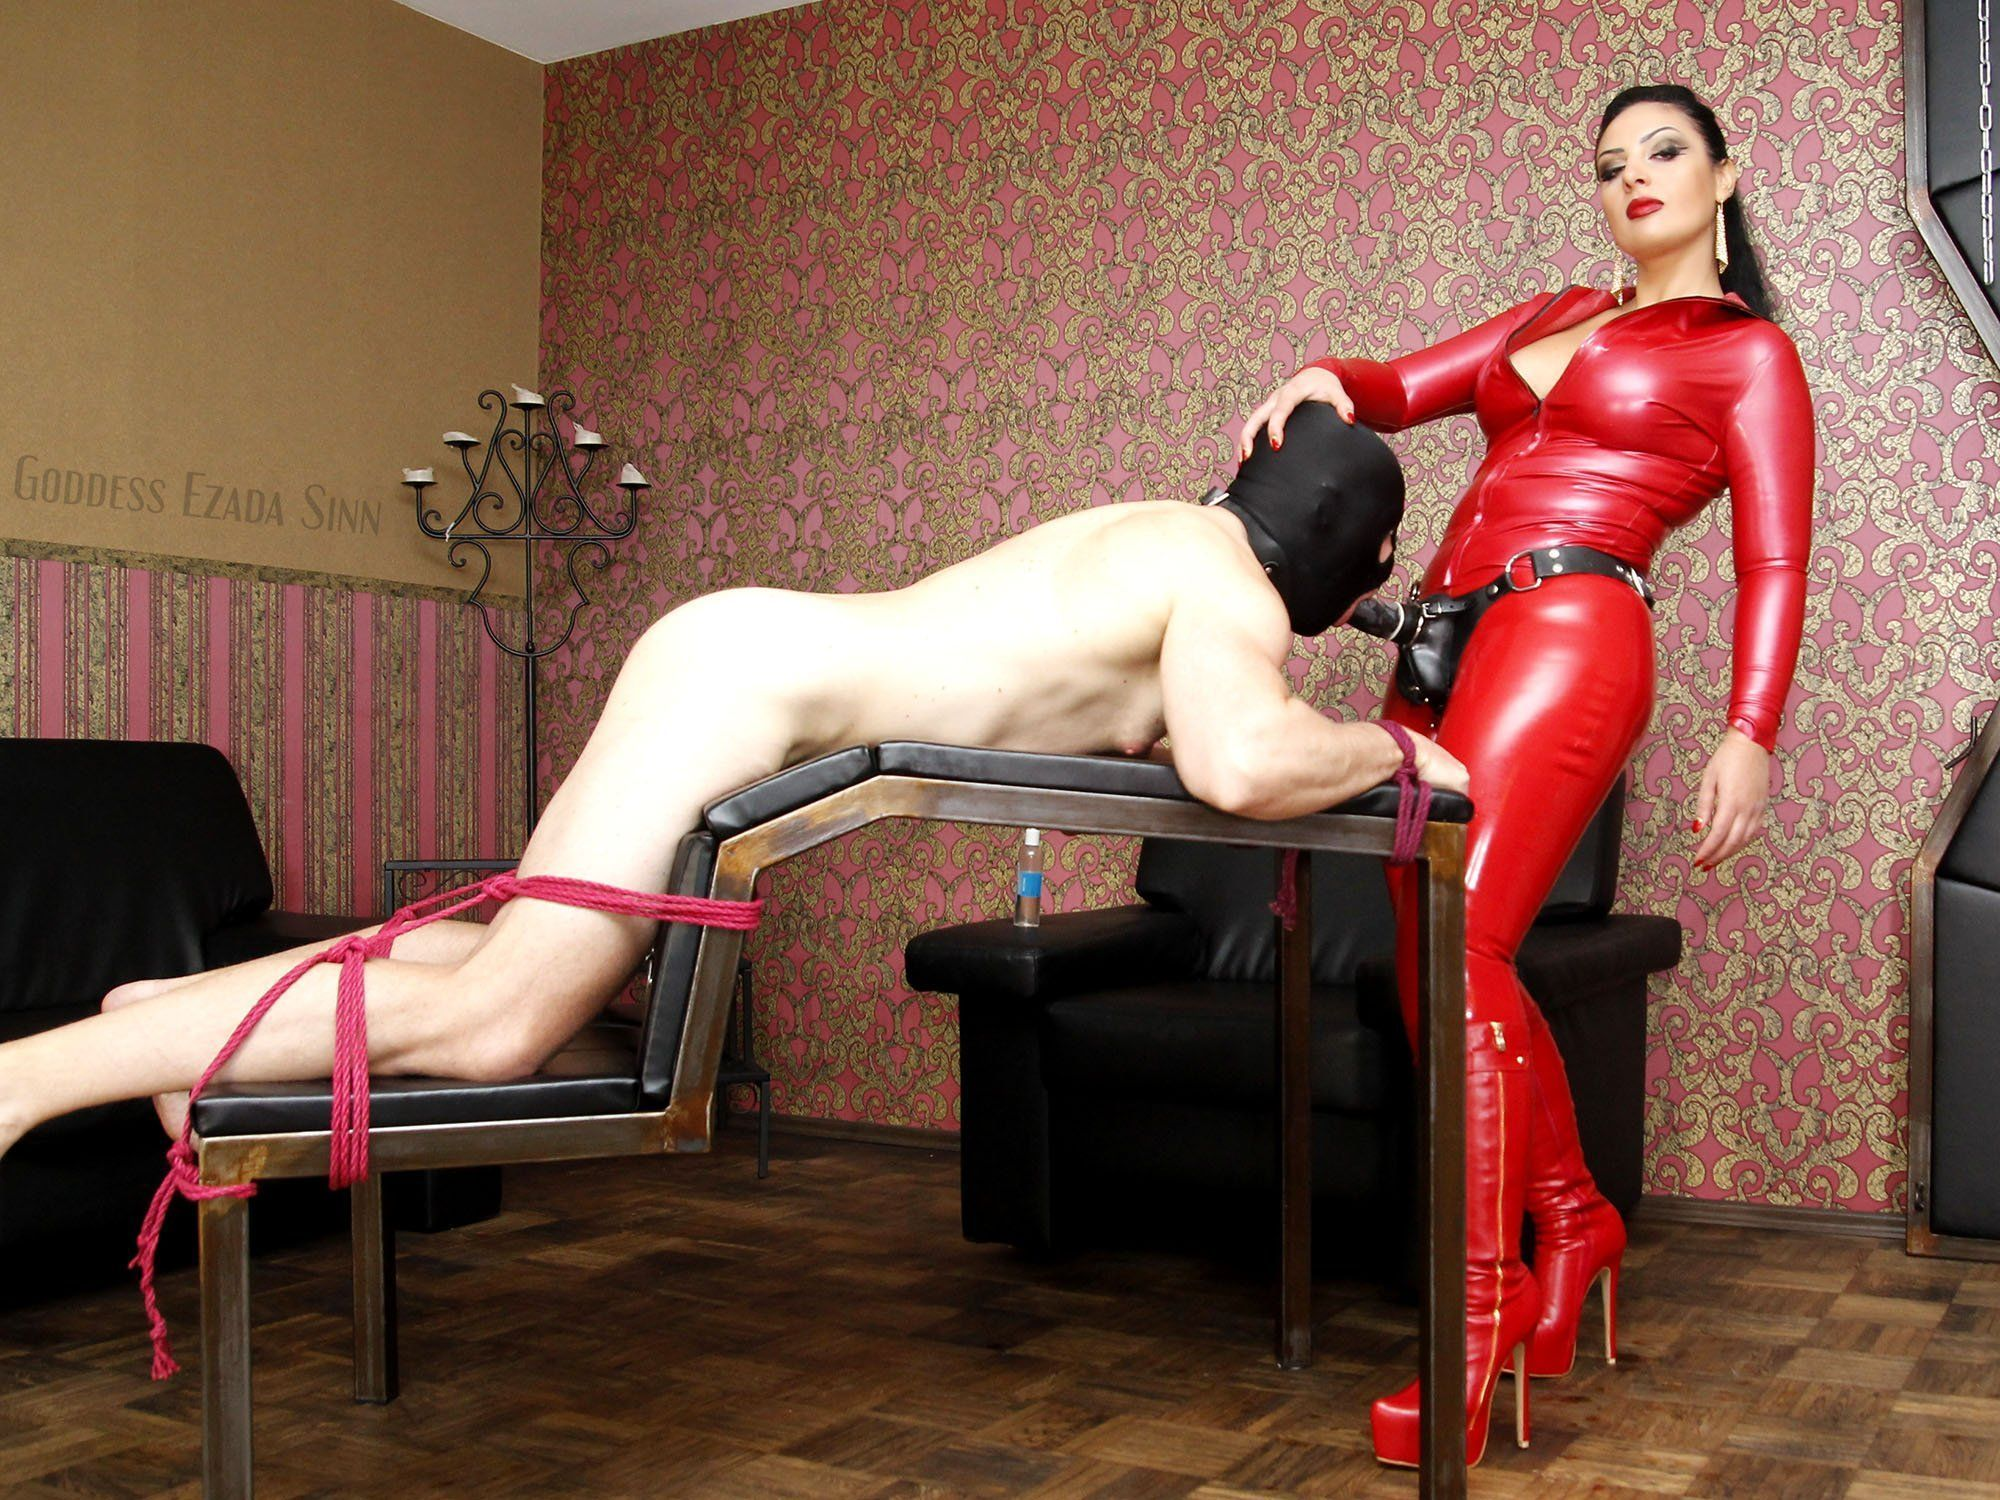 best of Galleries domination Buty strap-on mistress femdom